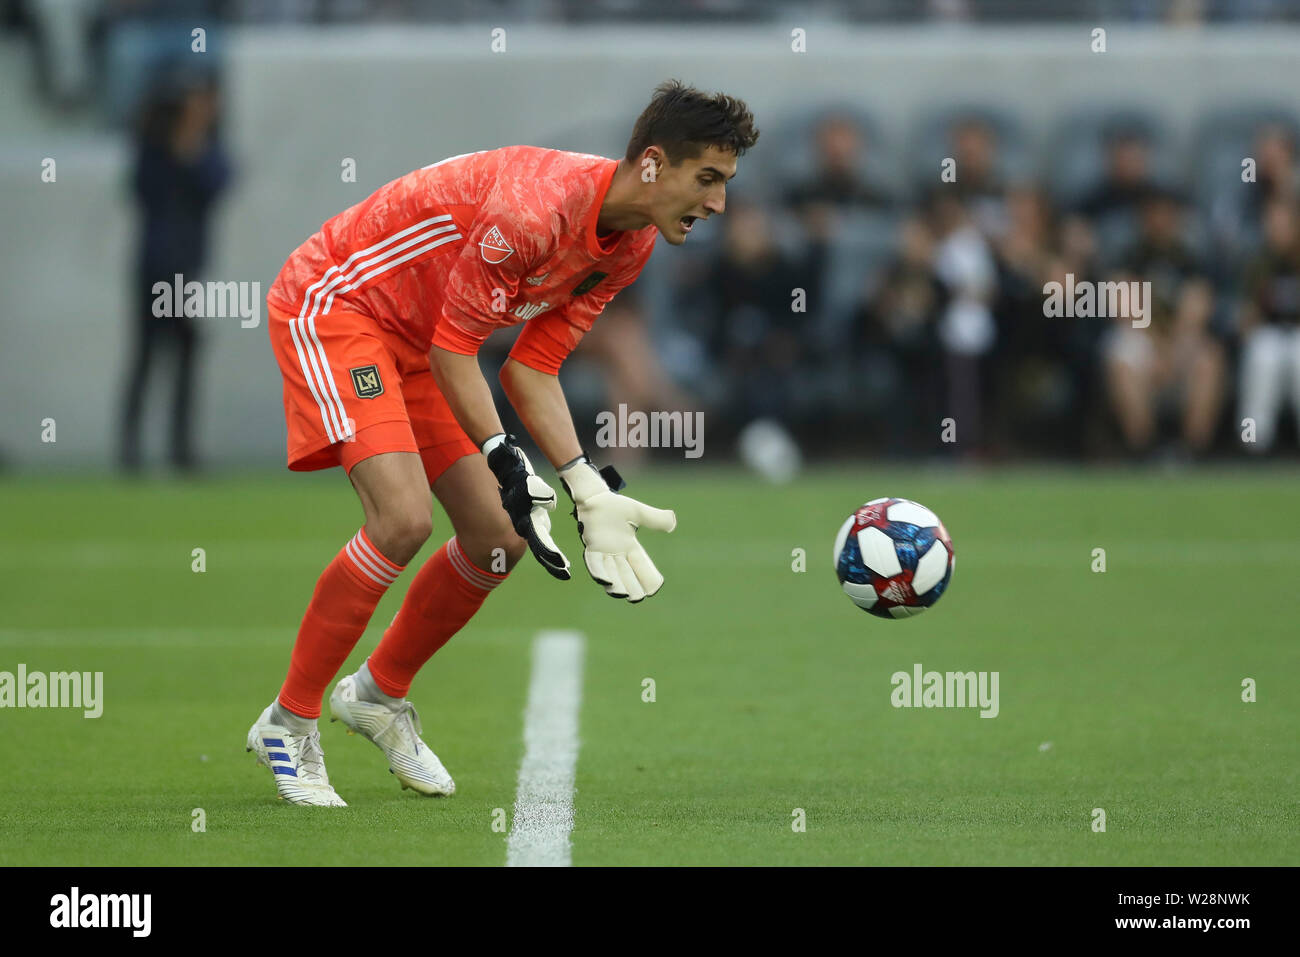 Los Angeles, CA, USA. 6th July, 2019. Los Angeles FC goalkeeper Pablo Sisniega (23) collects a shot on goal during the game between Vancouver Whitecaps and Los Angeles FC at Banc of California Stadium in Los Angeles, CA., USA. (Photo by Peter Joneleit) Credit: csm/Alamy Live News Stock Photo